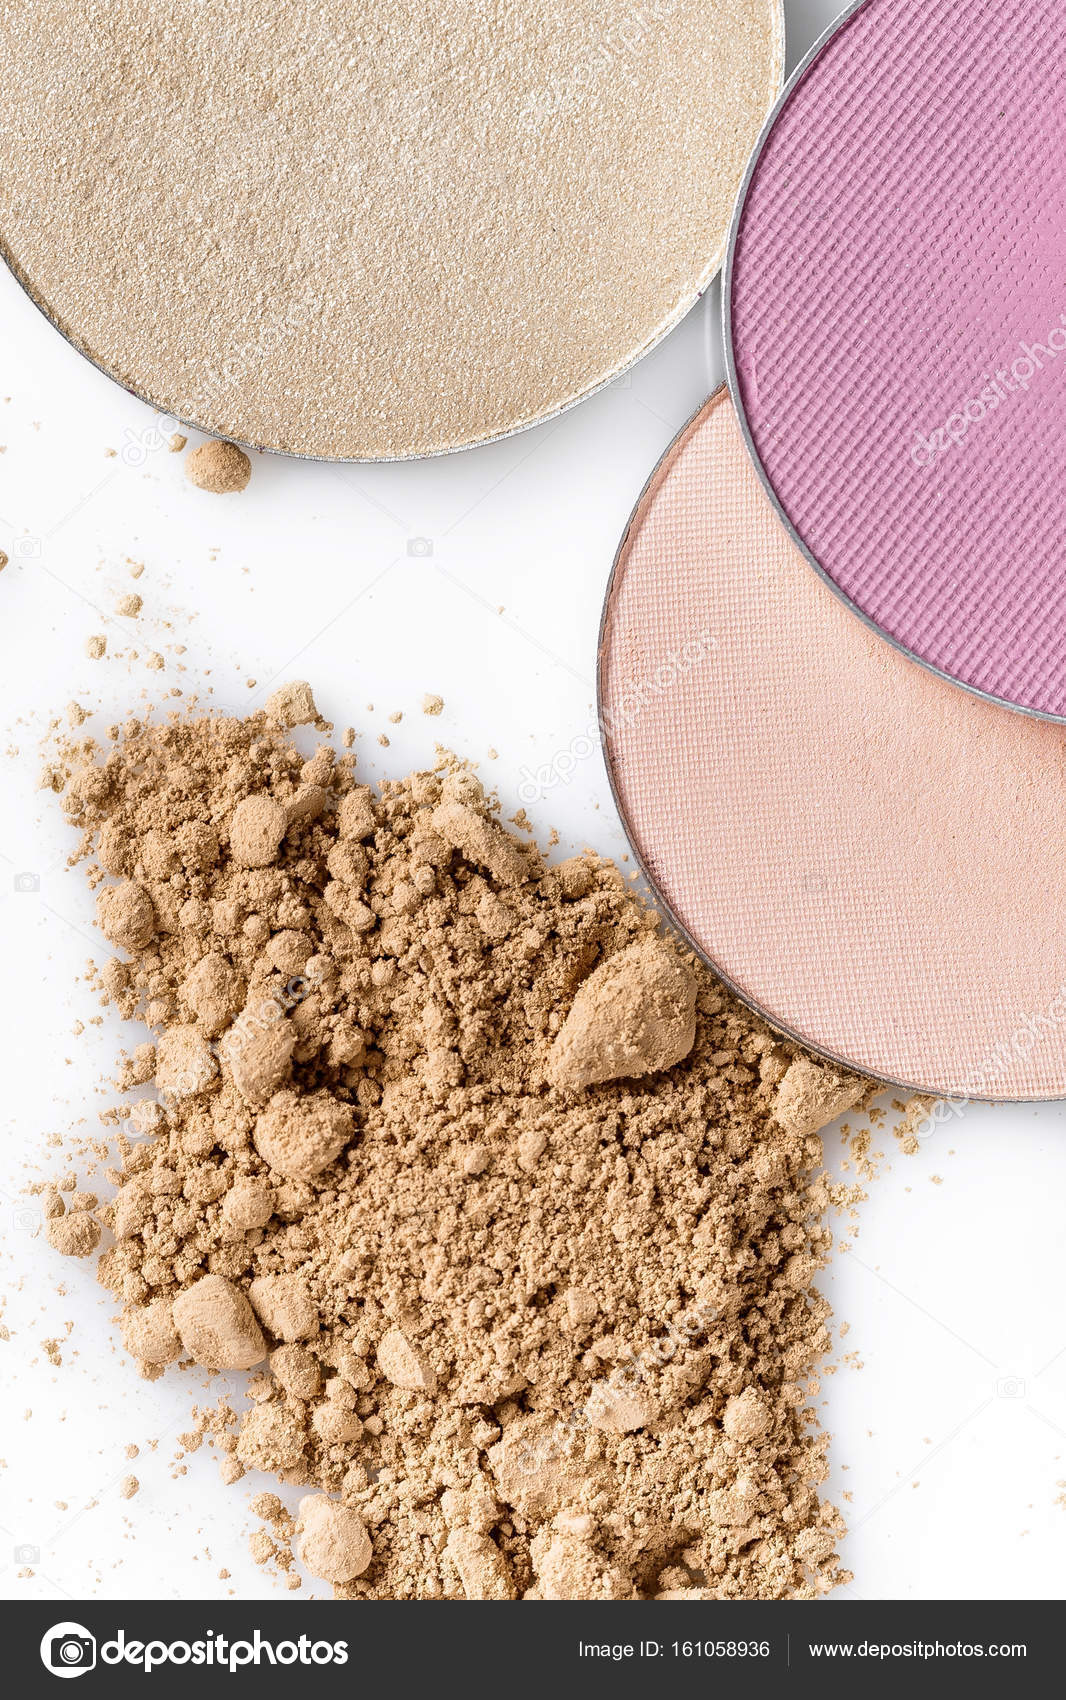 Beige Powder For The Face And Round Eye Shadow On A White Background